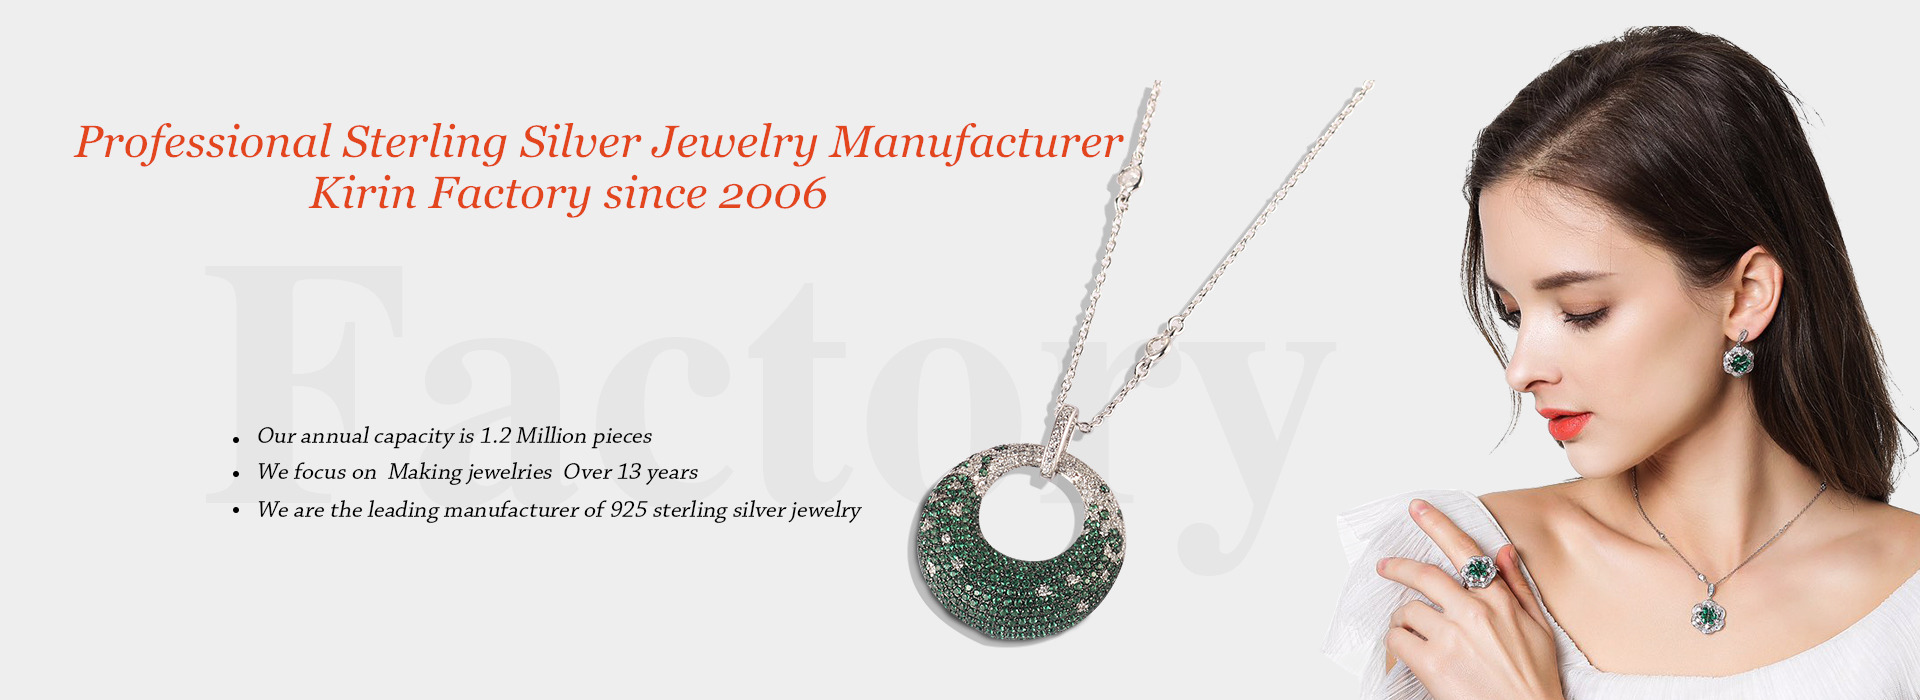 wholesale sterling silver jewelry, 925 sterling silver jewelry suppliers, silver jewllery manufacturer